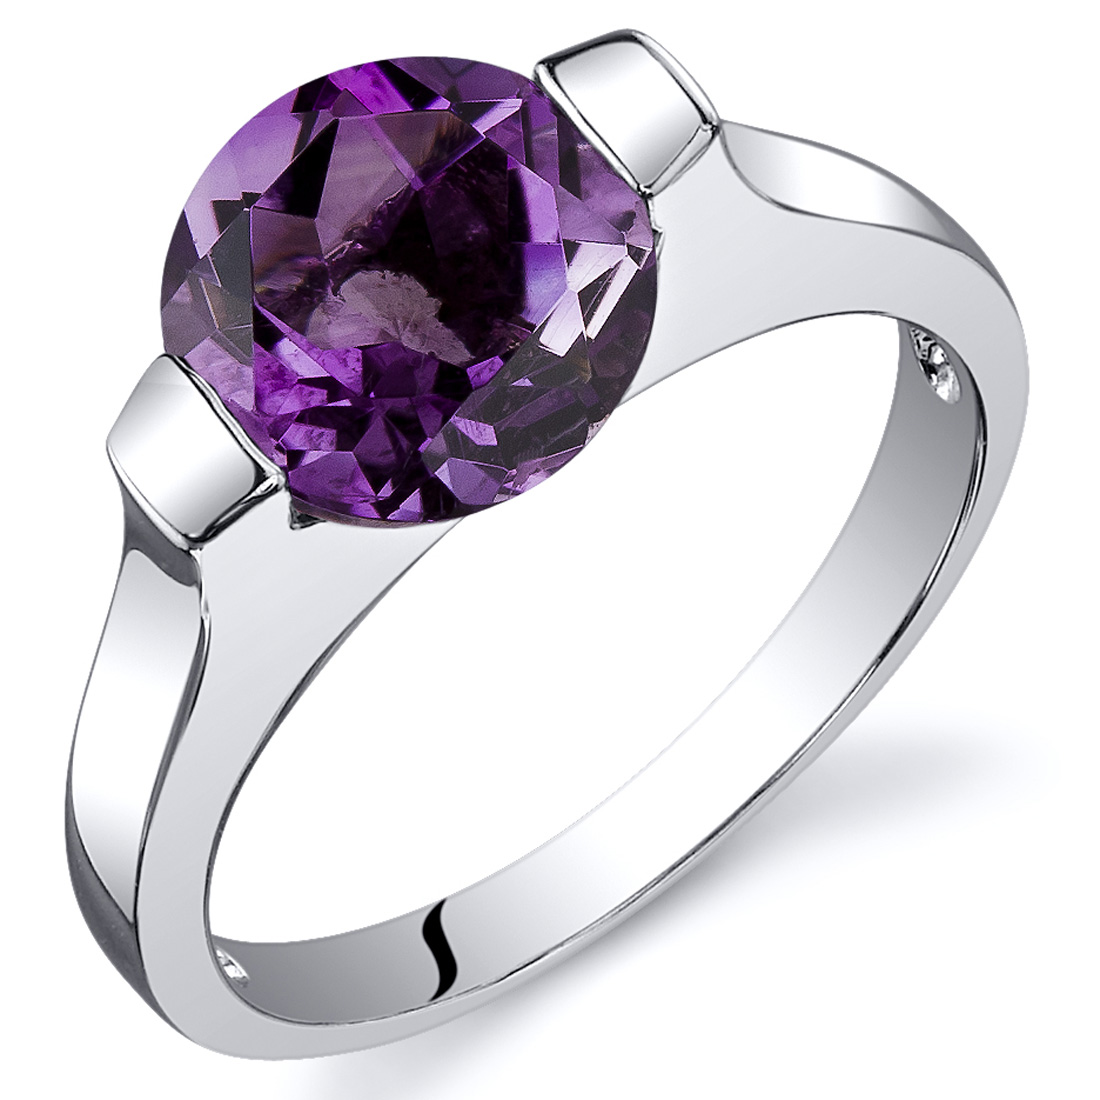 Peora 1.75 Ct Amethyst Engagement Ring in Rhodium-Plated Sterling Silver